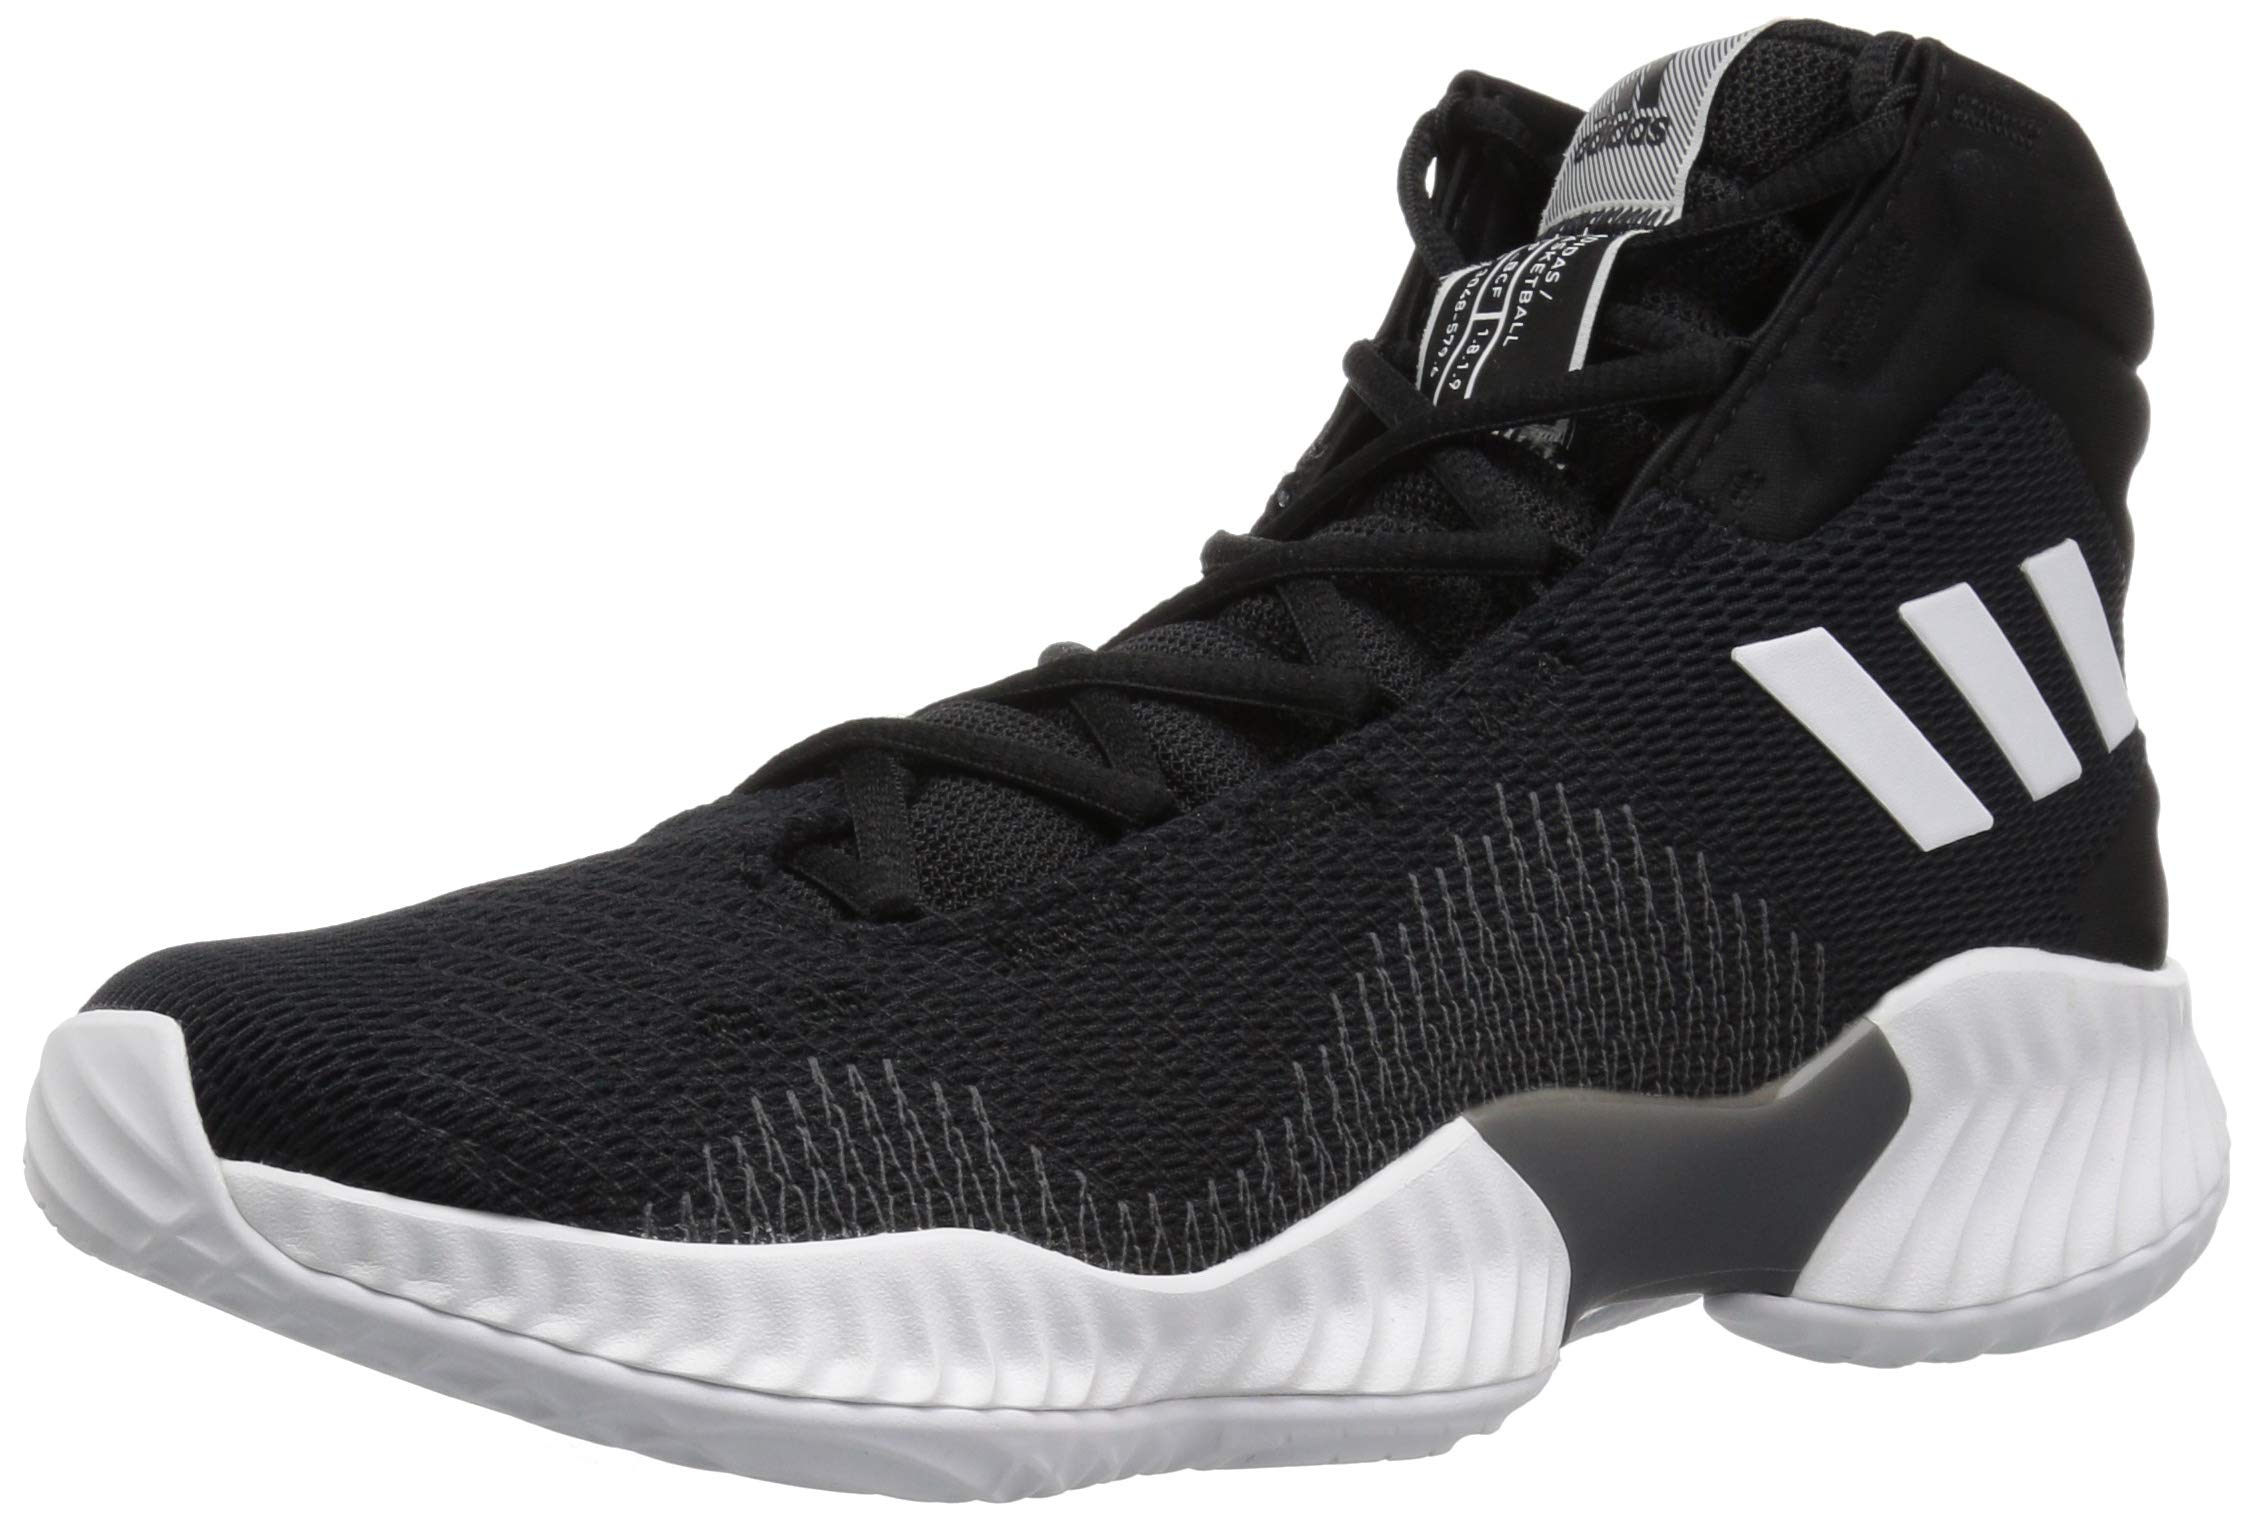 adidas Men's Pro Bounce 2018 Basketball Shoe, Black/White/Grey, 5 M US